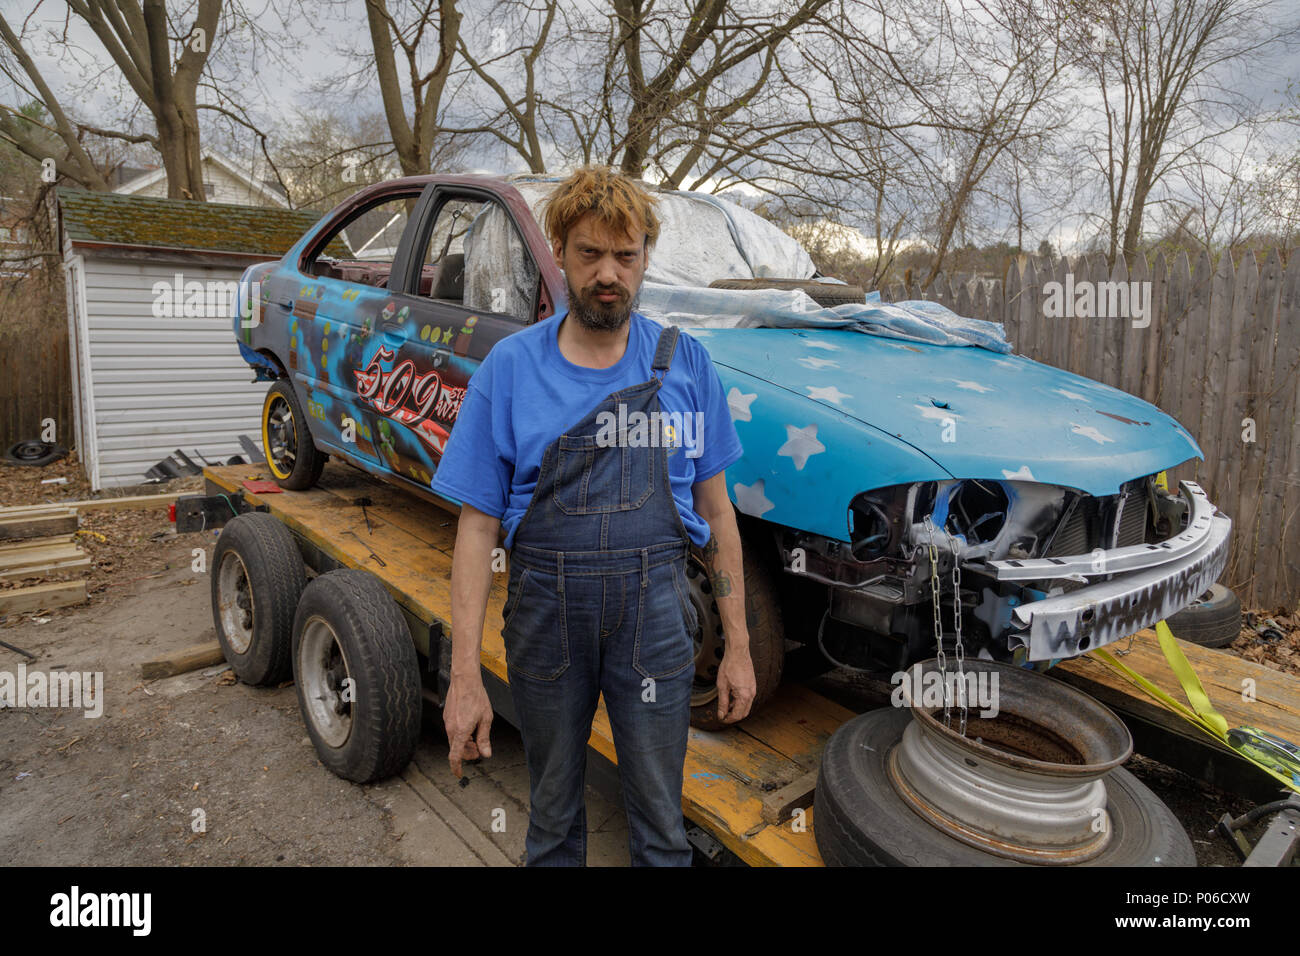 Gloversville, New York: A demolition derby driver, and his car. - Stock Image